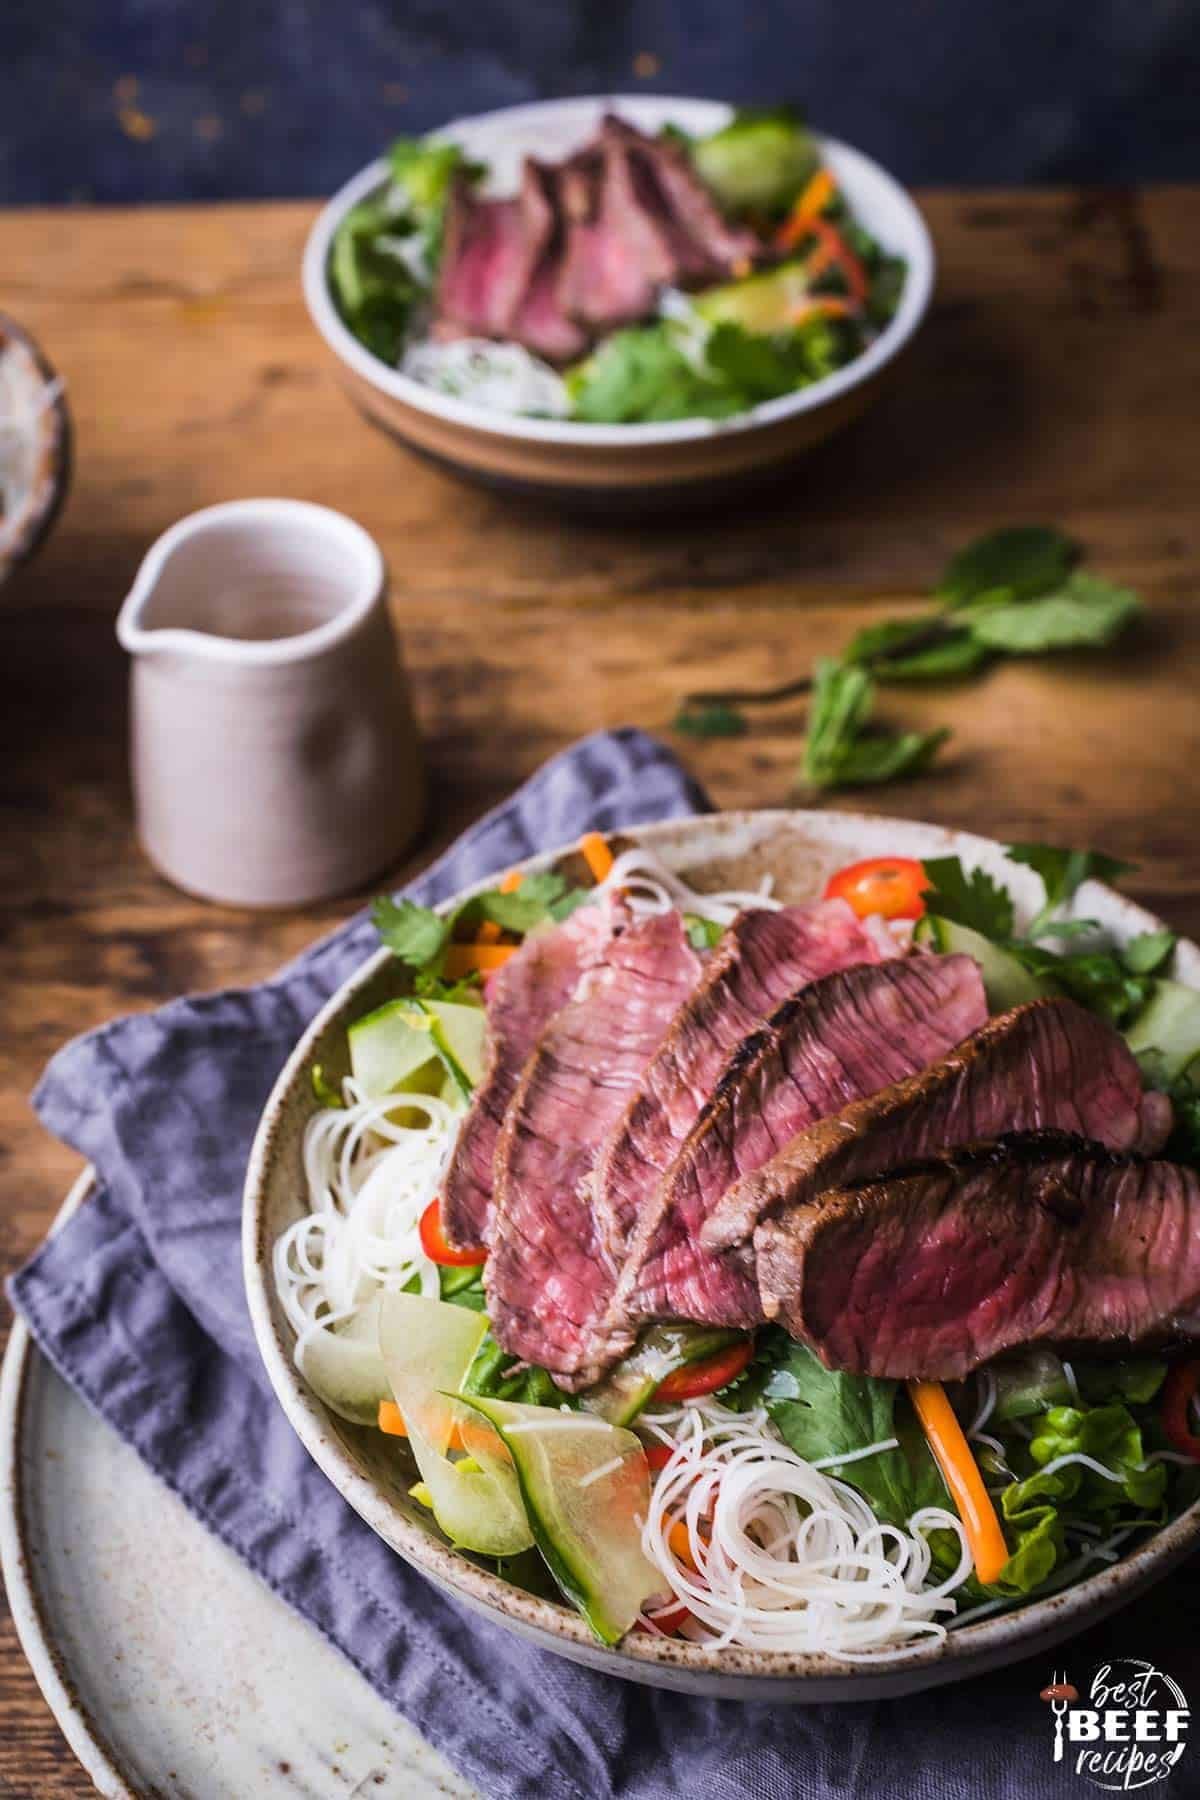 Two bowls of Vietnamese beef salad with a small pitcher of Asian salad dressing